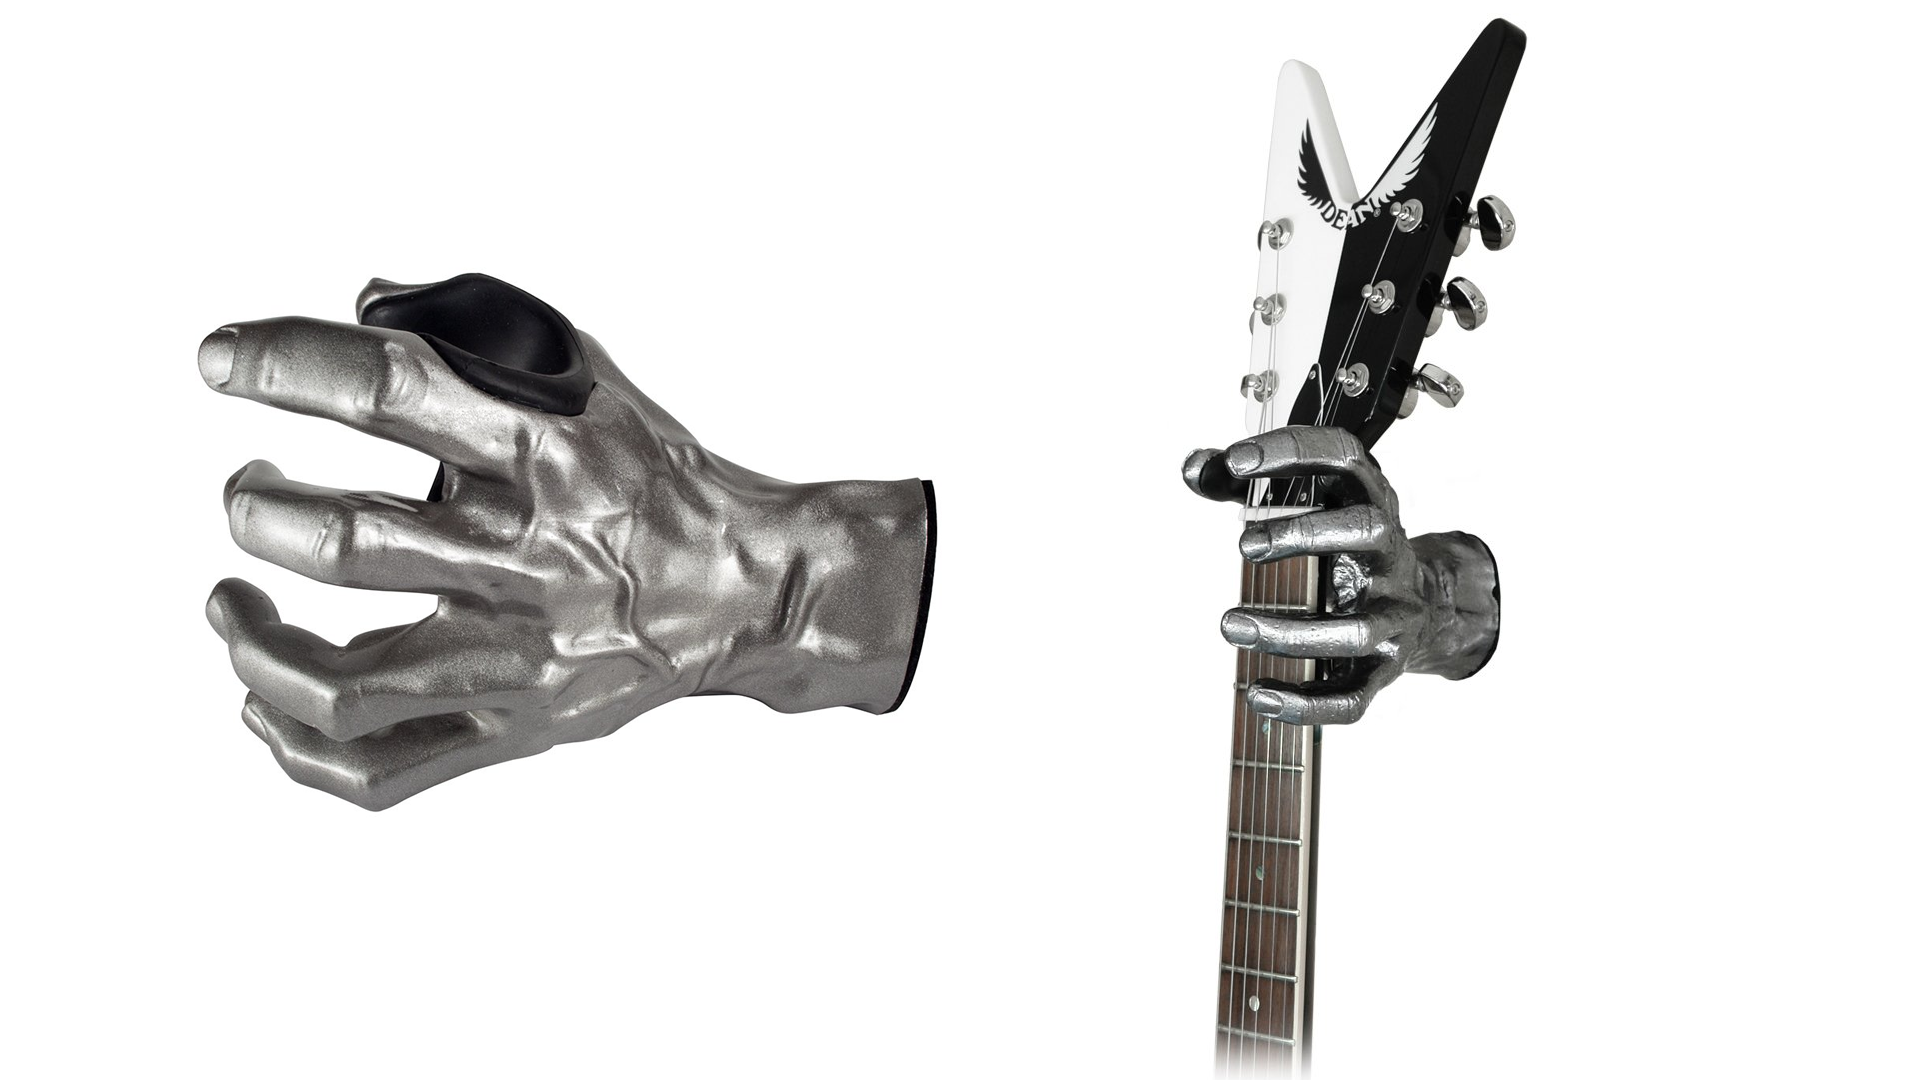 The Grip Studios silver hand guitar mount holding a guitar and looking cool